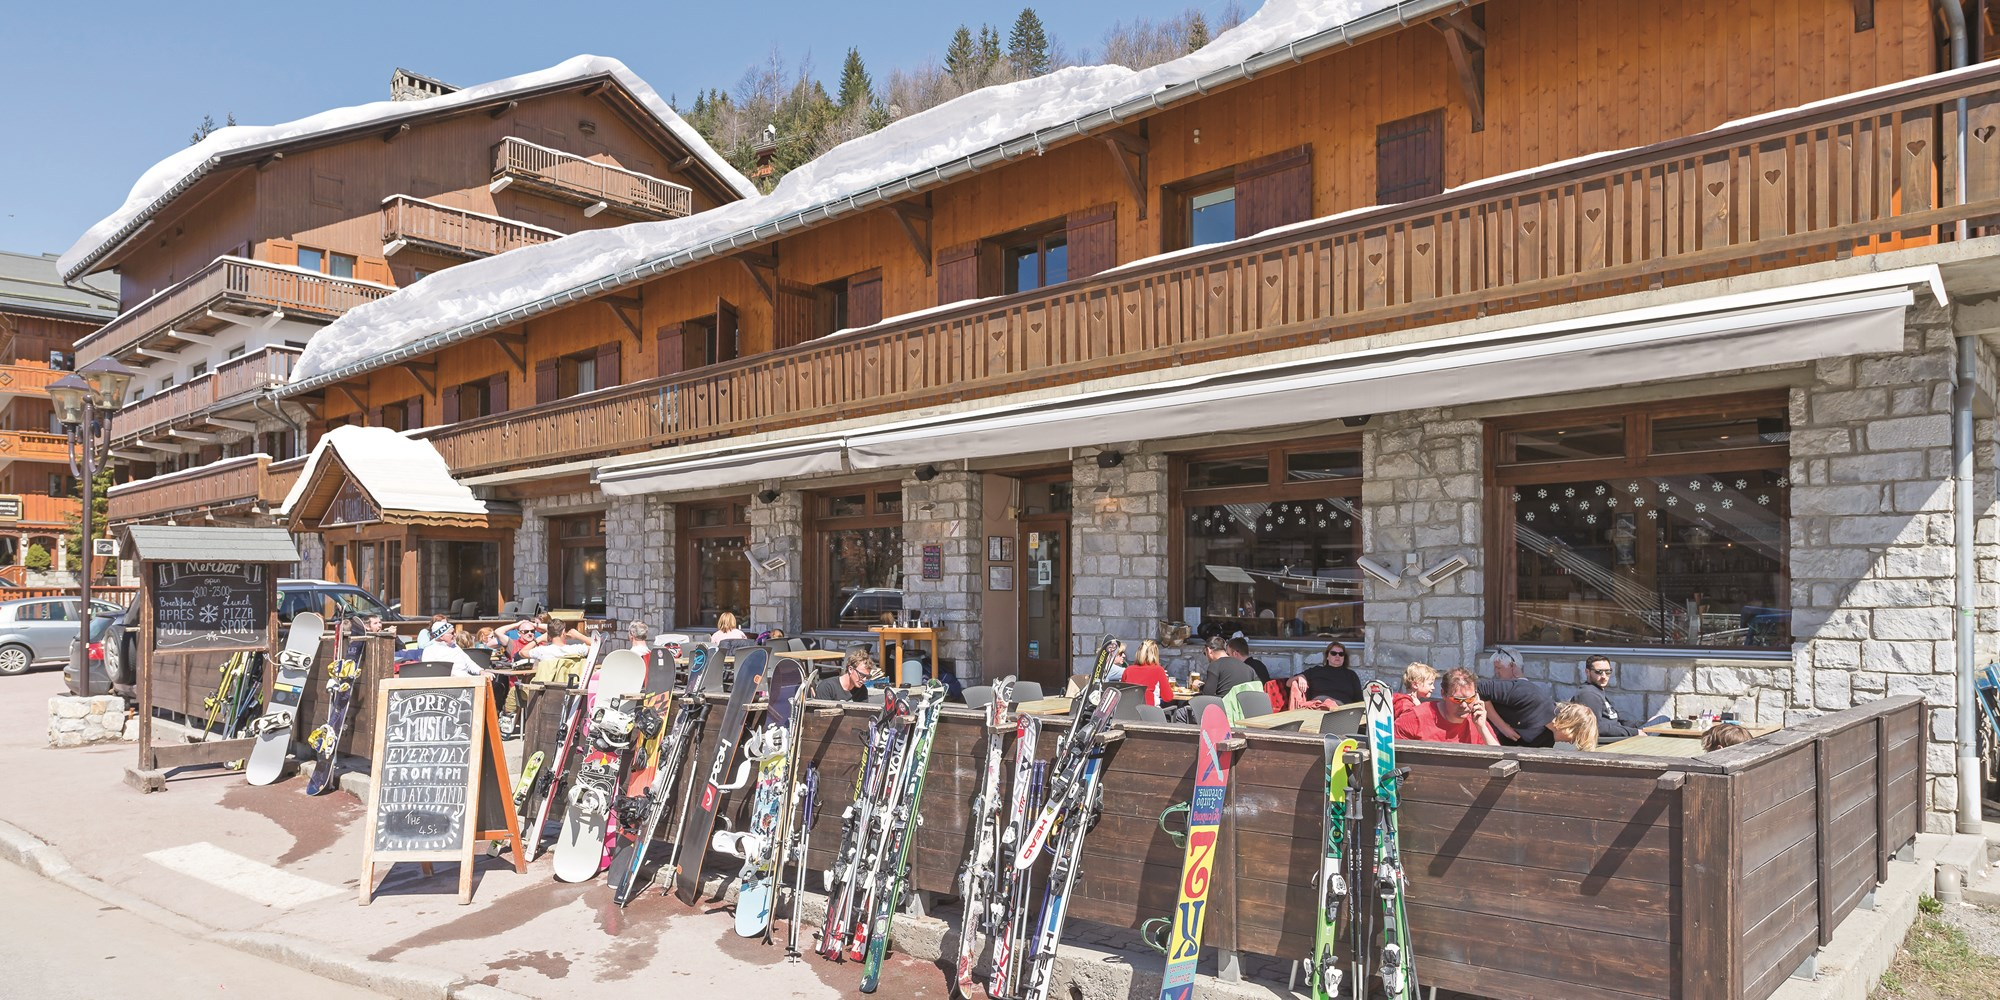 Chalet Le Lapin Blanc Meribel restaurants | meribel, meribel, three valleys | ski blancc